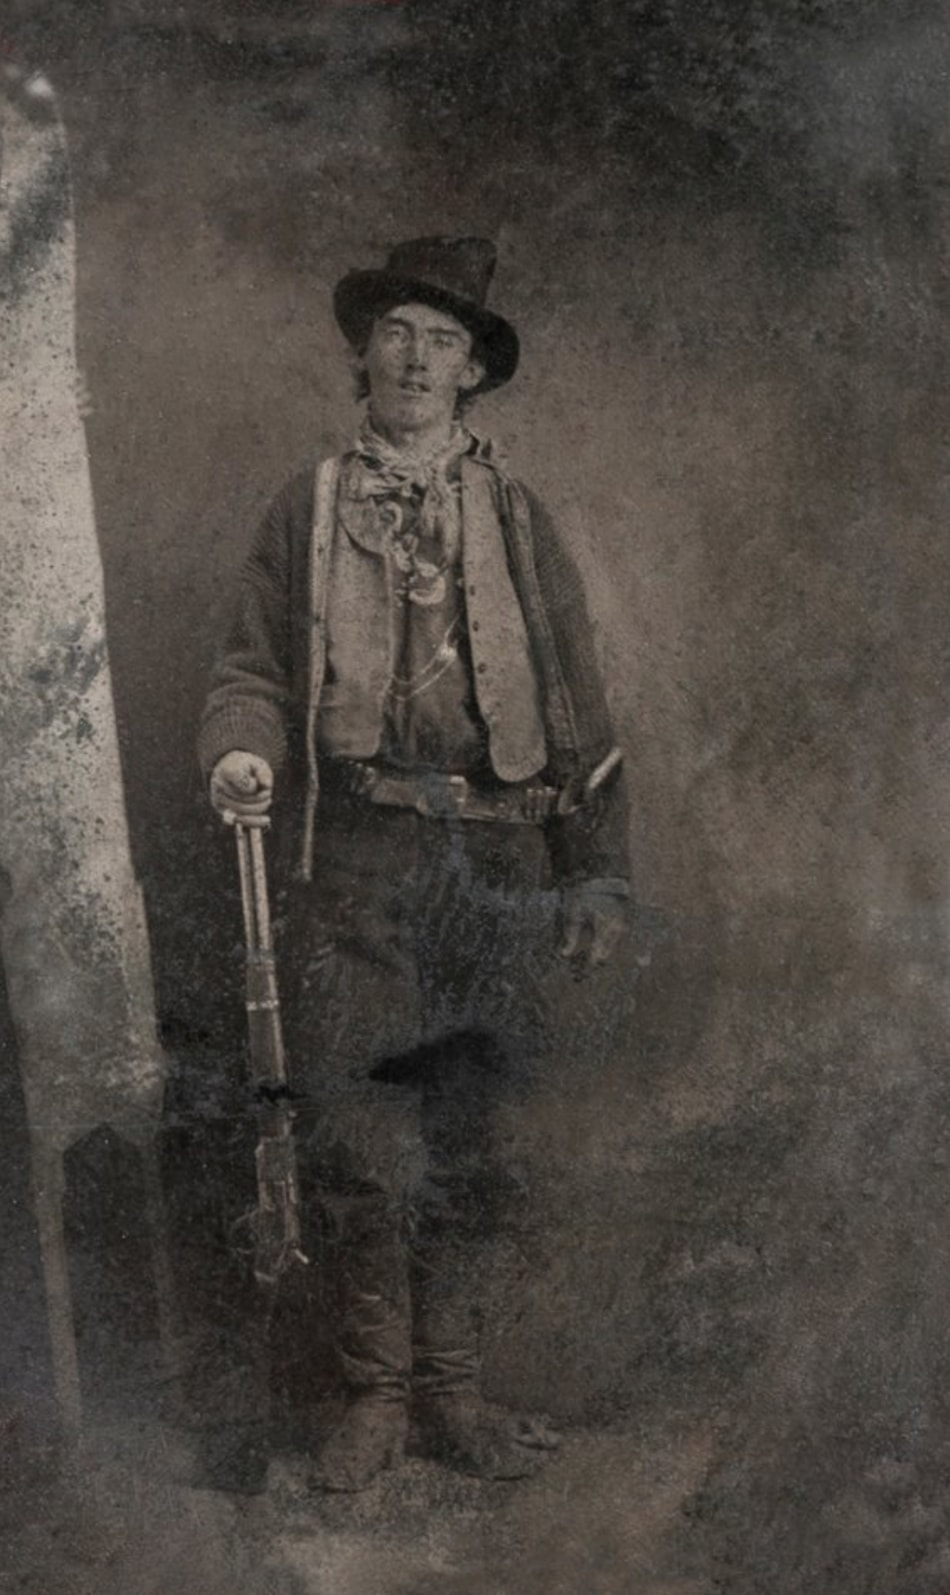 Billy The Kid in Tintype